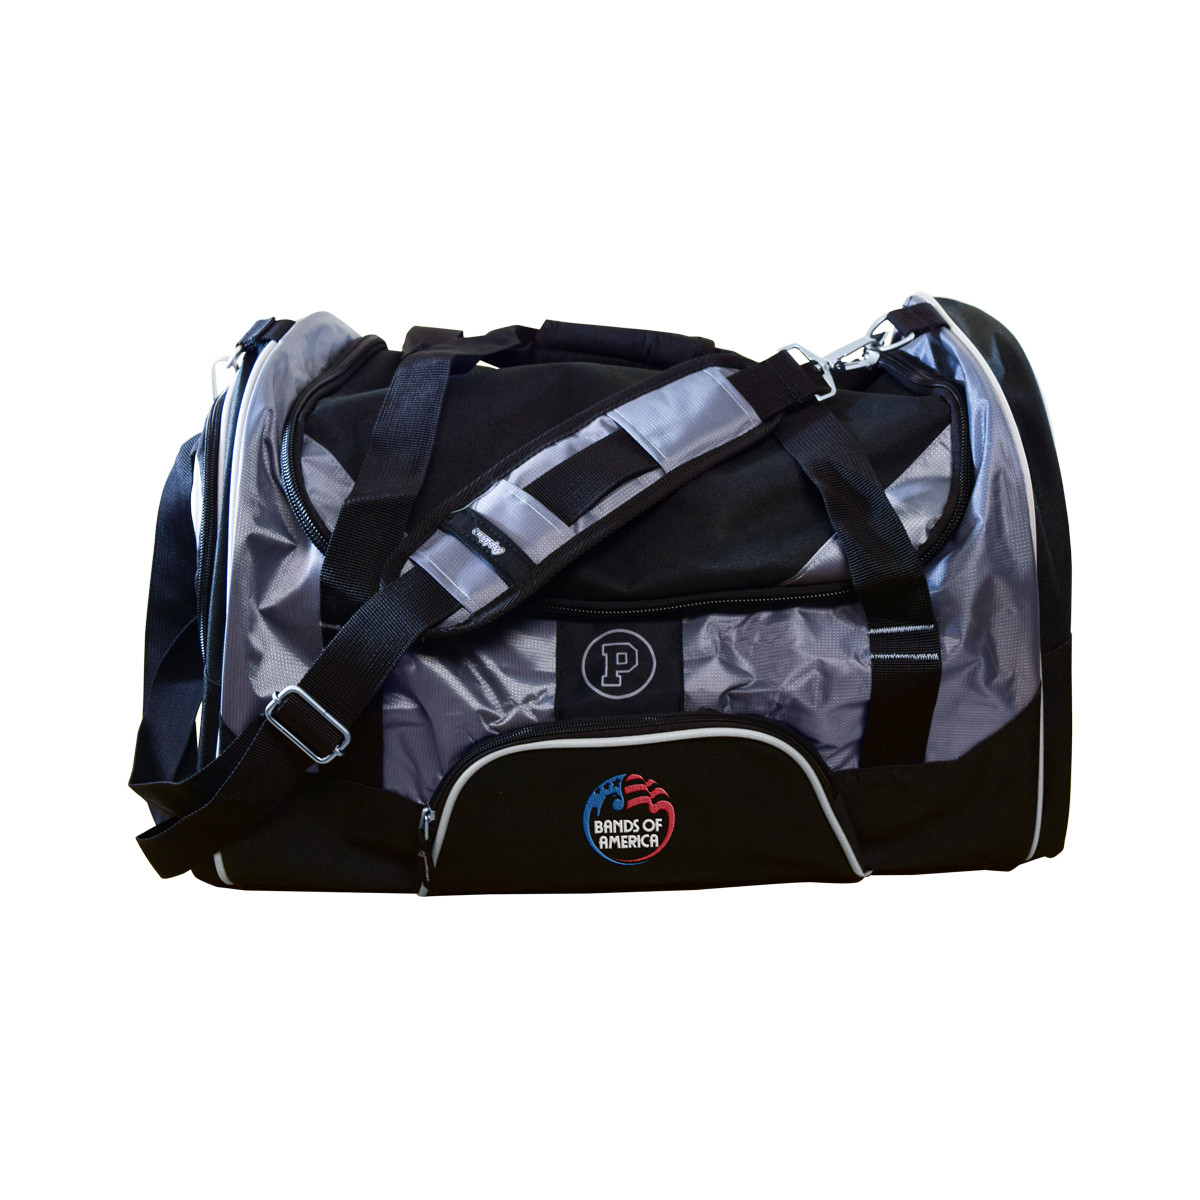 BOA Bands of America Duffel Bag